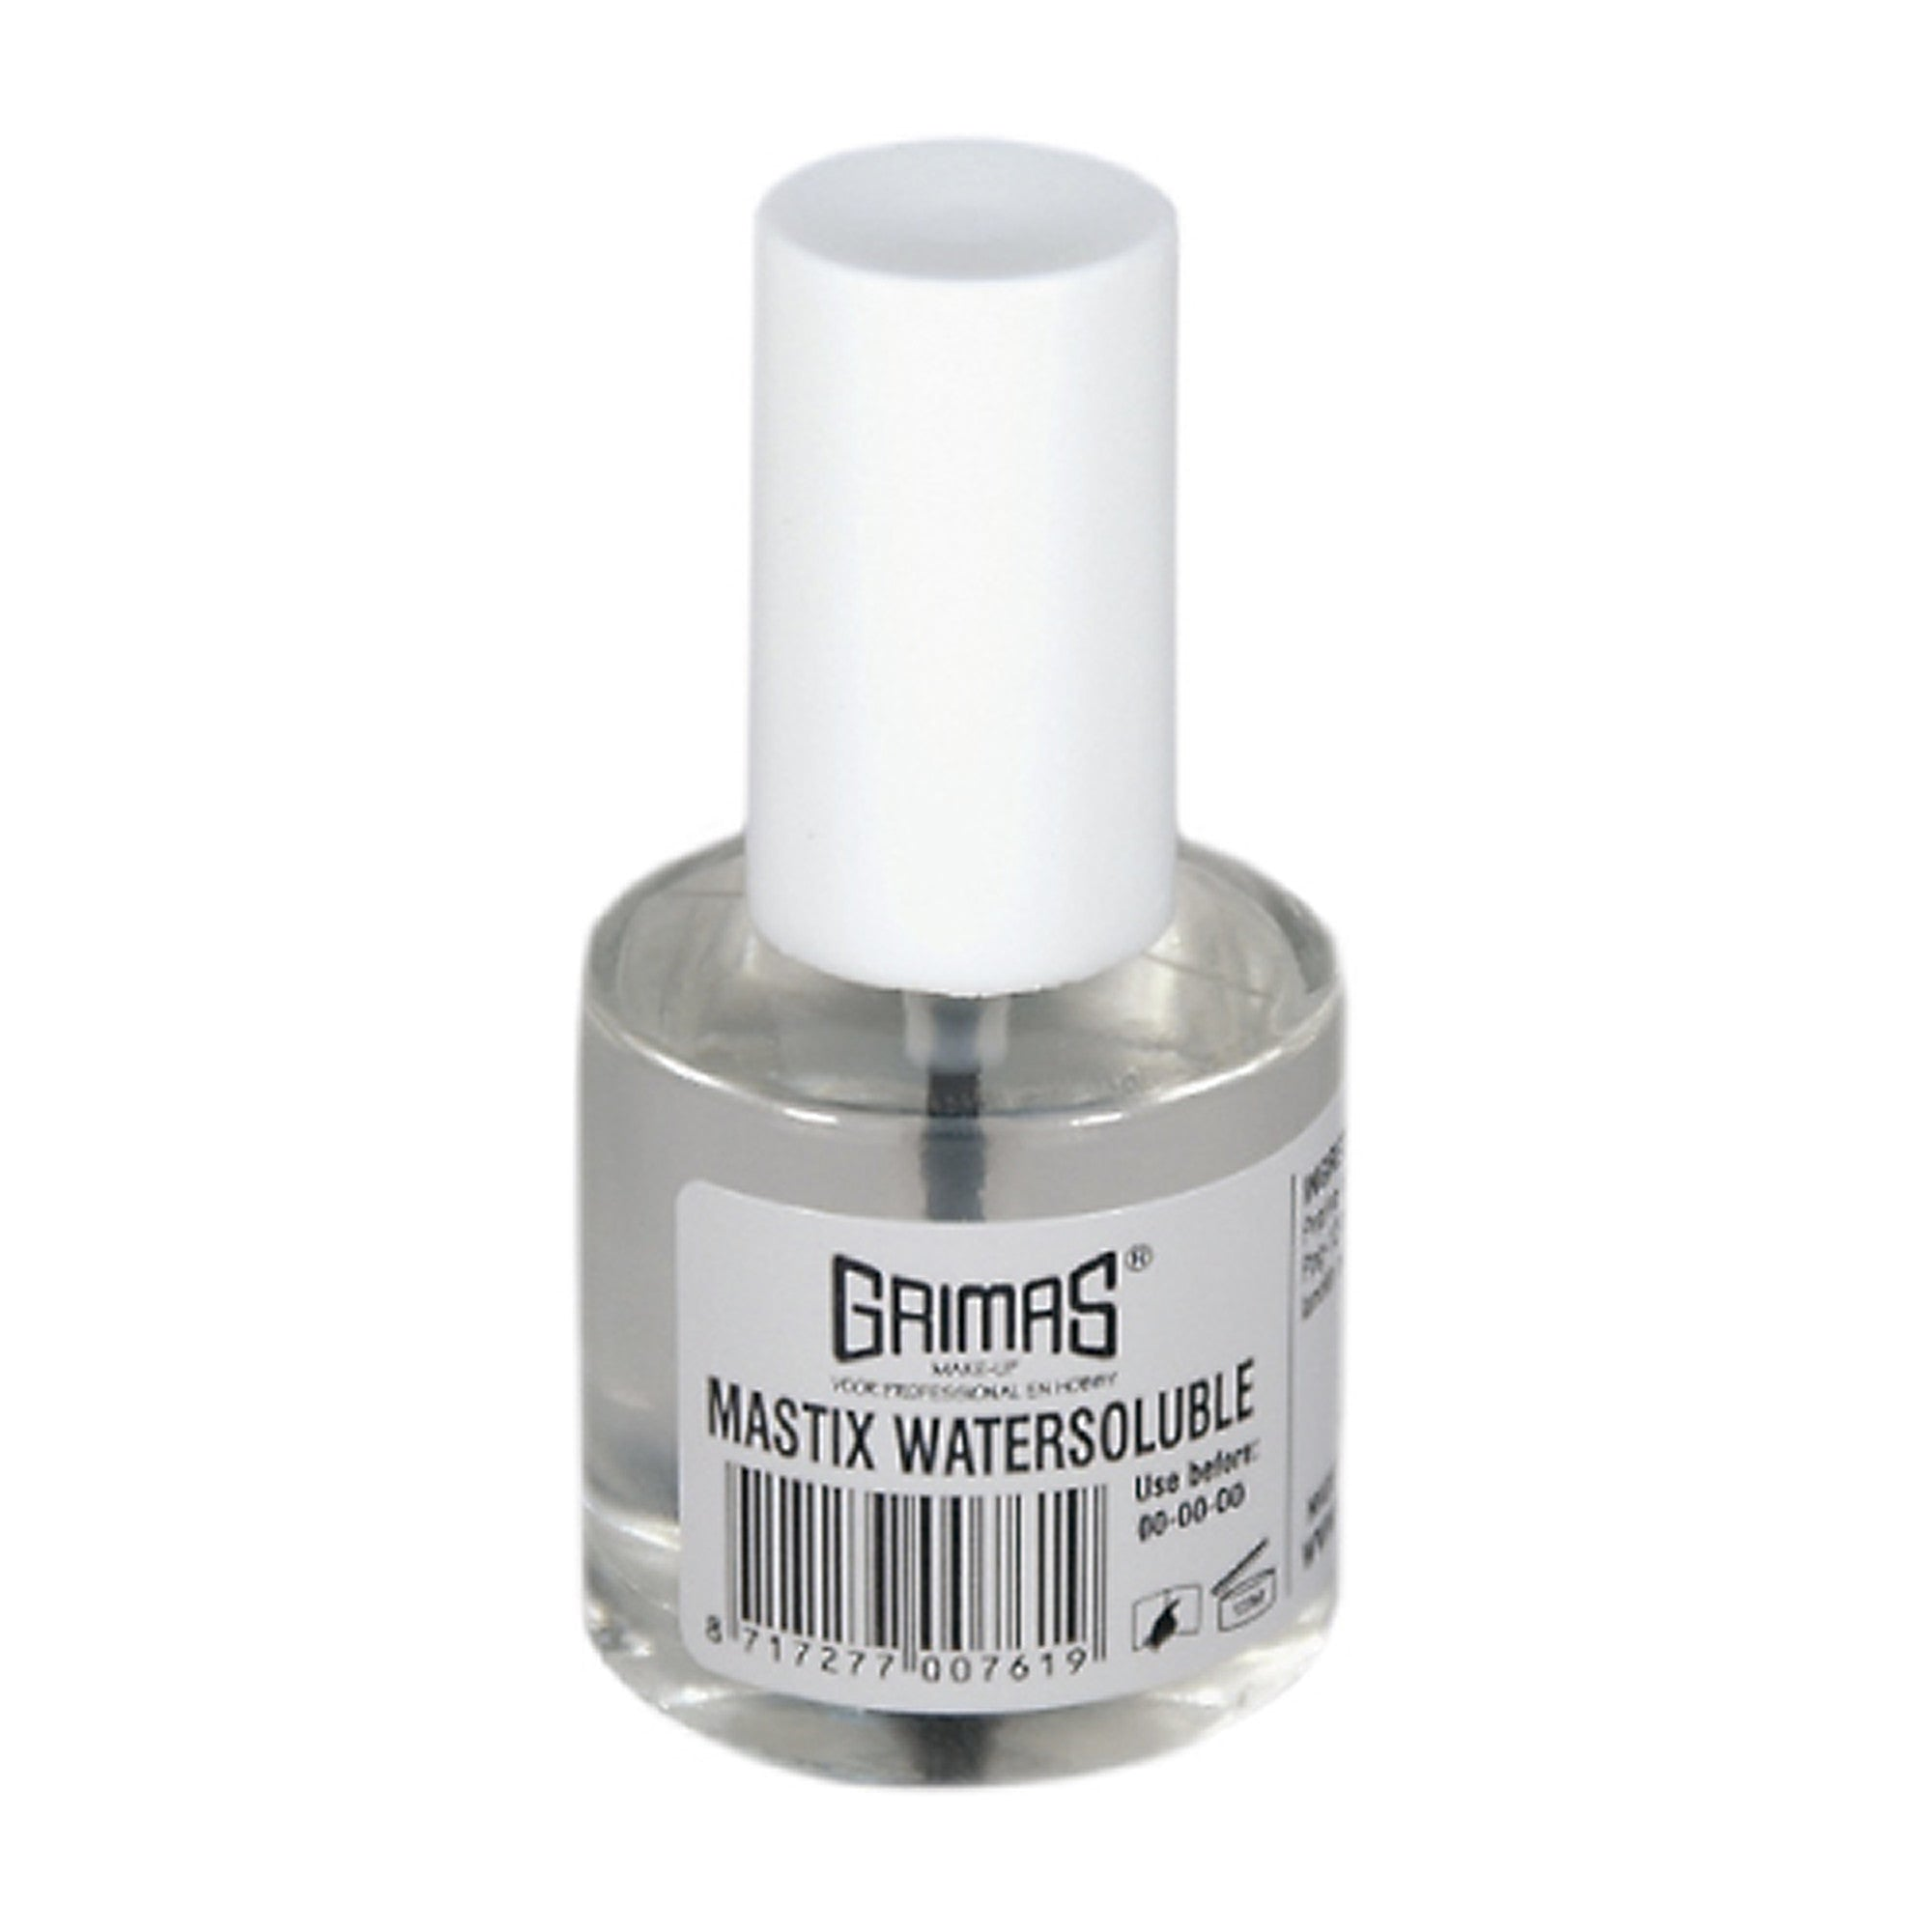 Grimas Mastix Watersoluble Adhesive